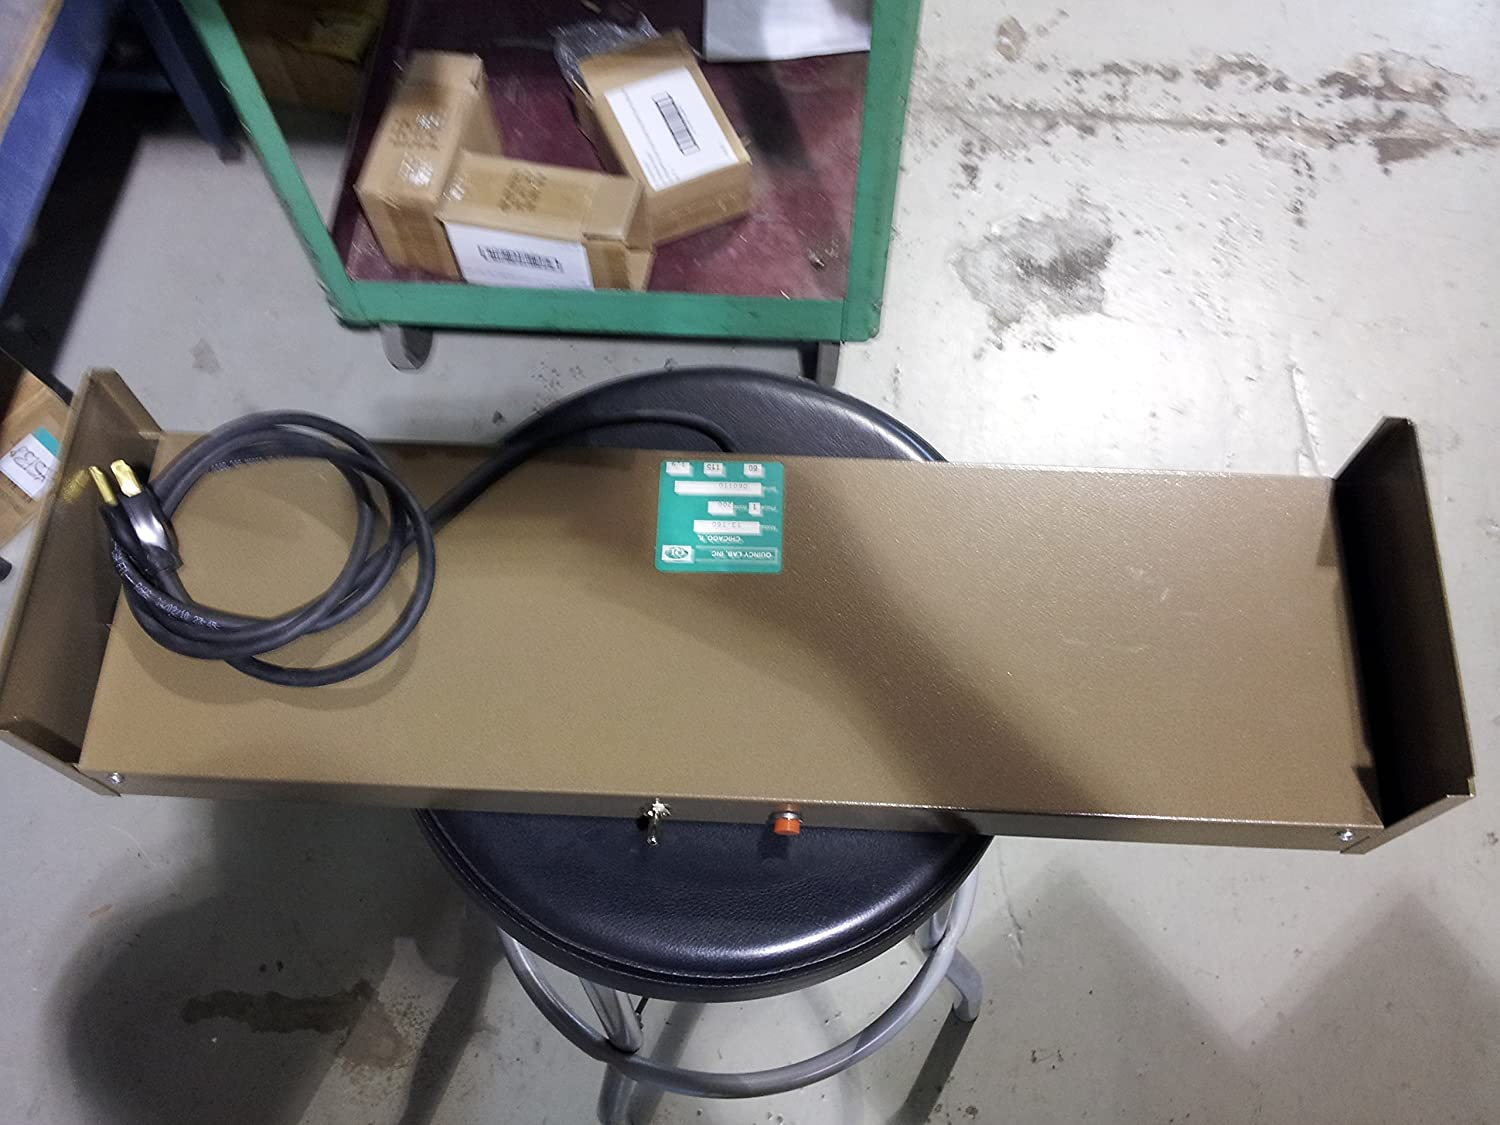 Quincy Lab 03 160 Steel Silicone Enamel Strip Heater Working Area 120v Heat Tape Wiring Further Briskheat Rubber Heating 12 Long 7 Wide 125w 115v 92 Amp Science Equipment Industrial